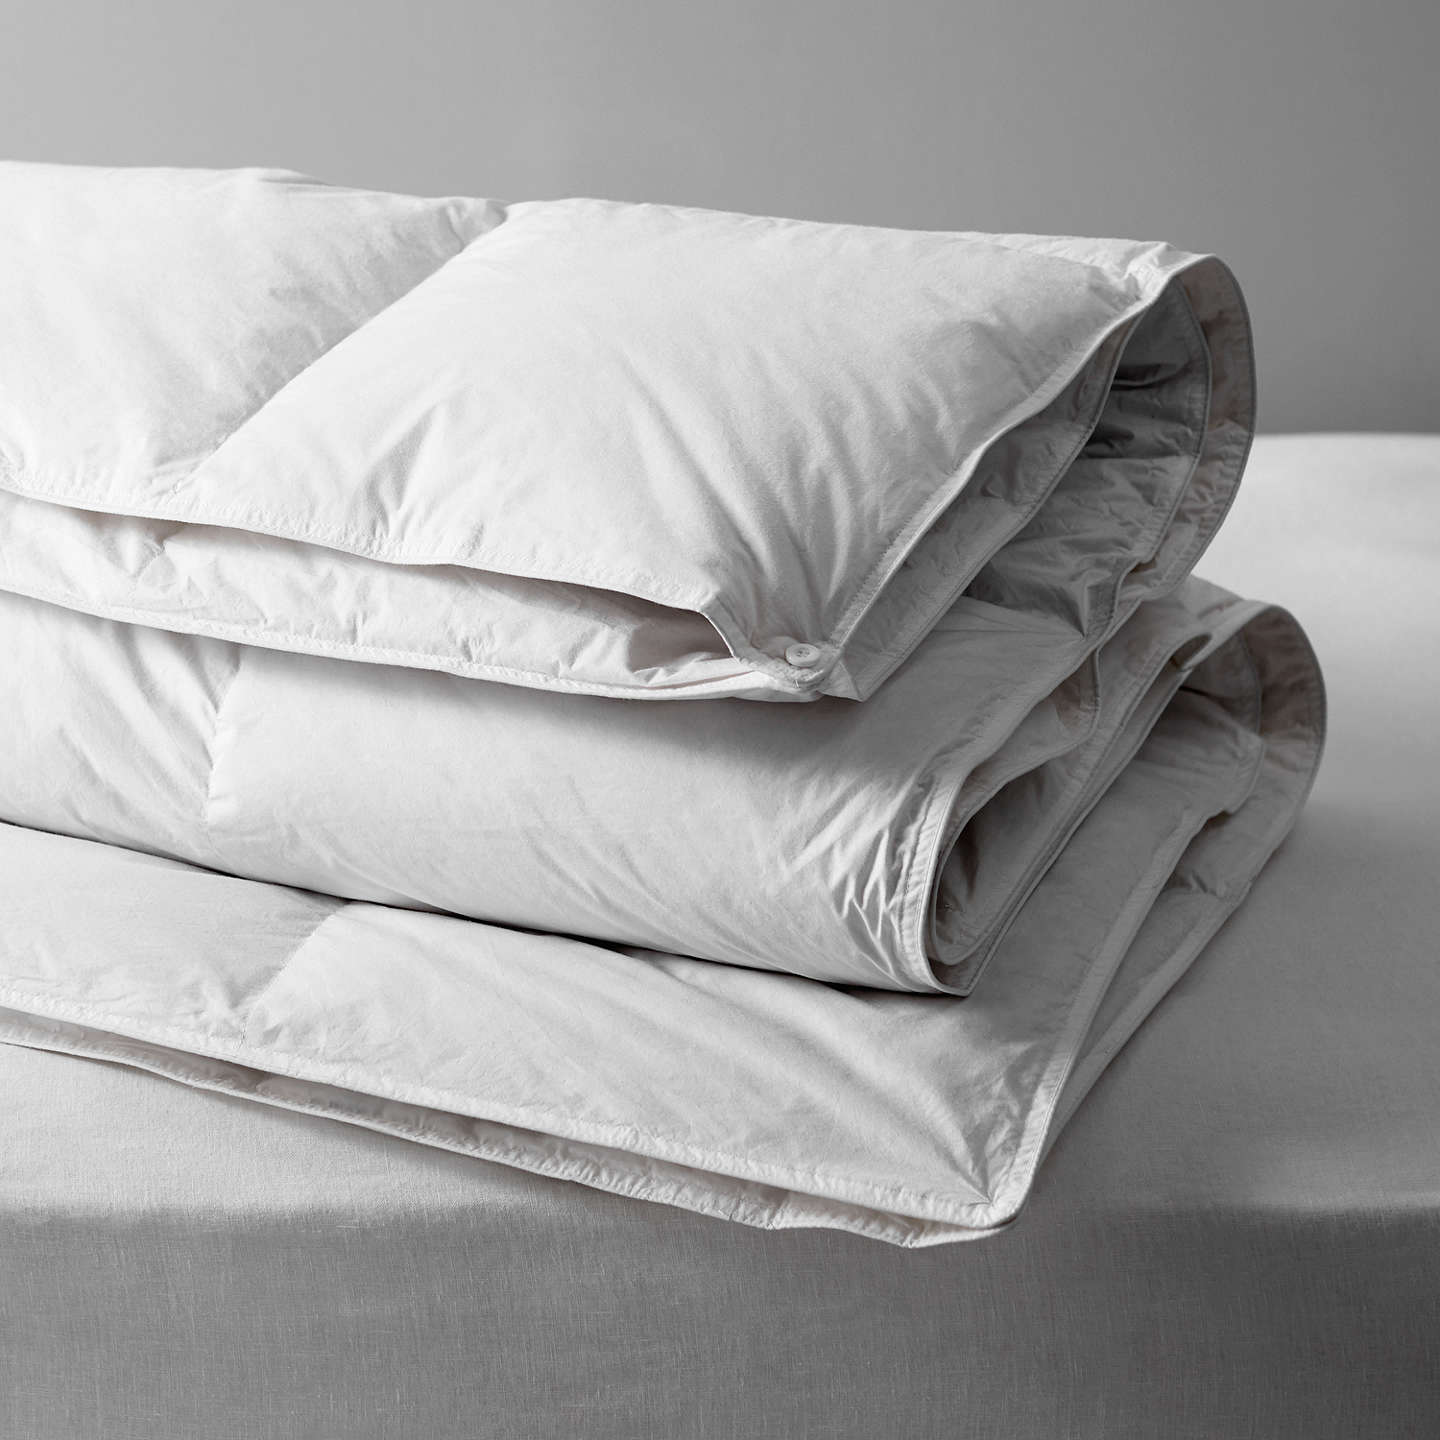 John Lewis Natural White Goose Down Duvet 13 5 Tog 4 9